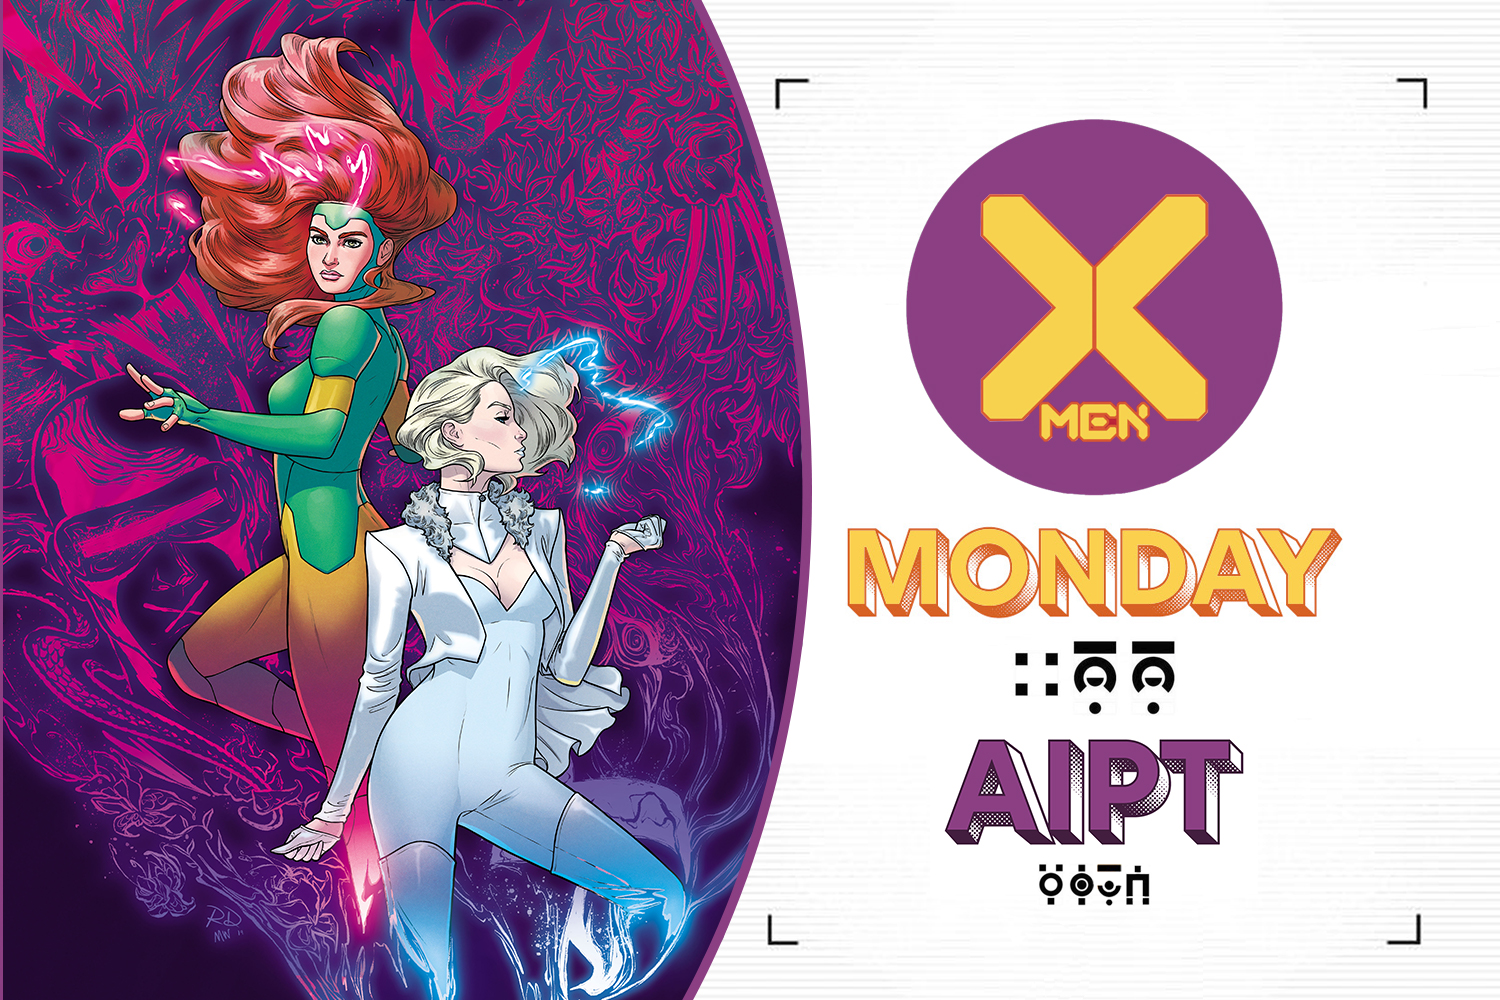 We kick off JEAN GREY + EMMA FROST WEEK with Jordan D. White and Leah Williams!